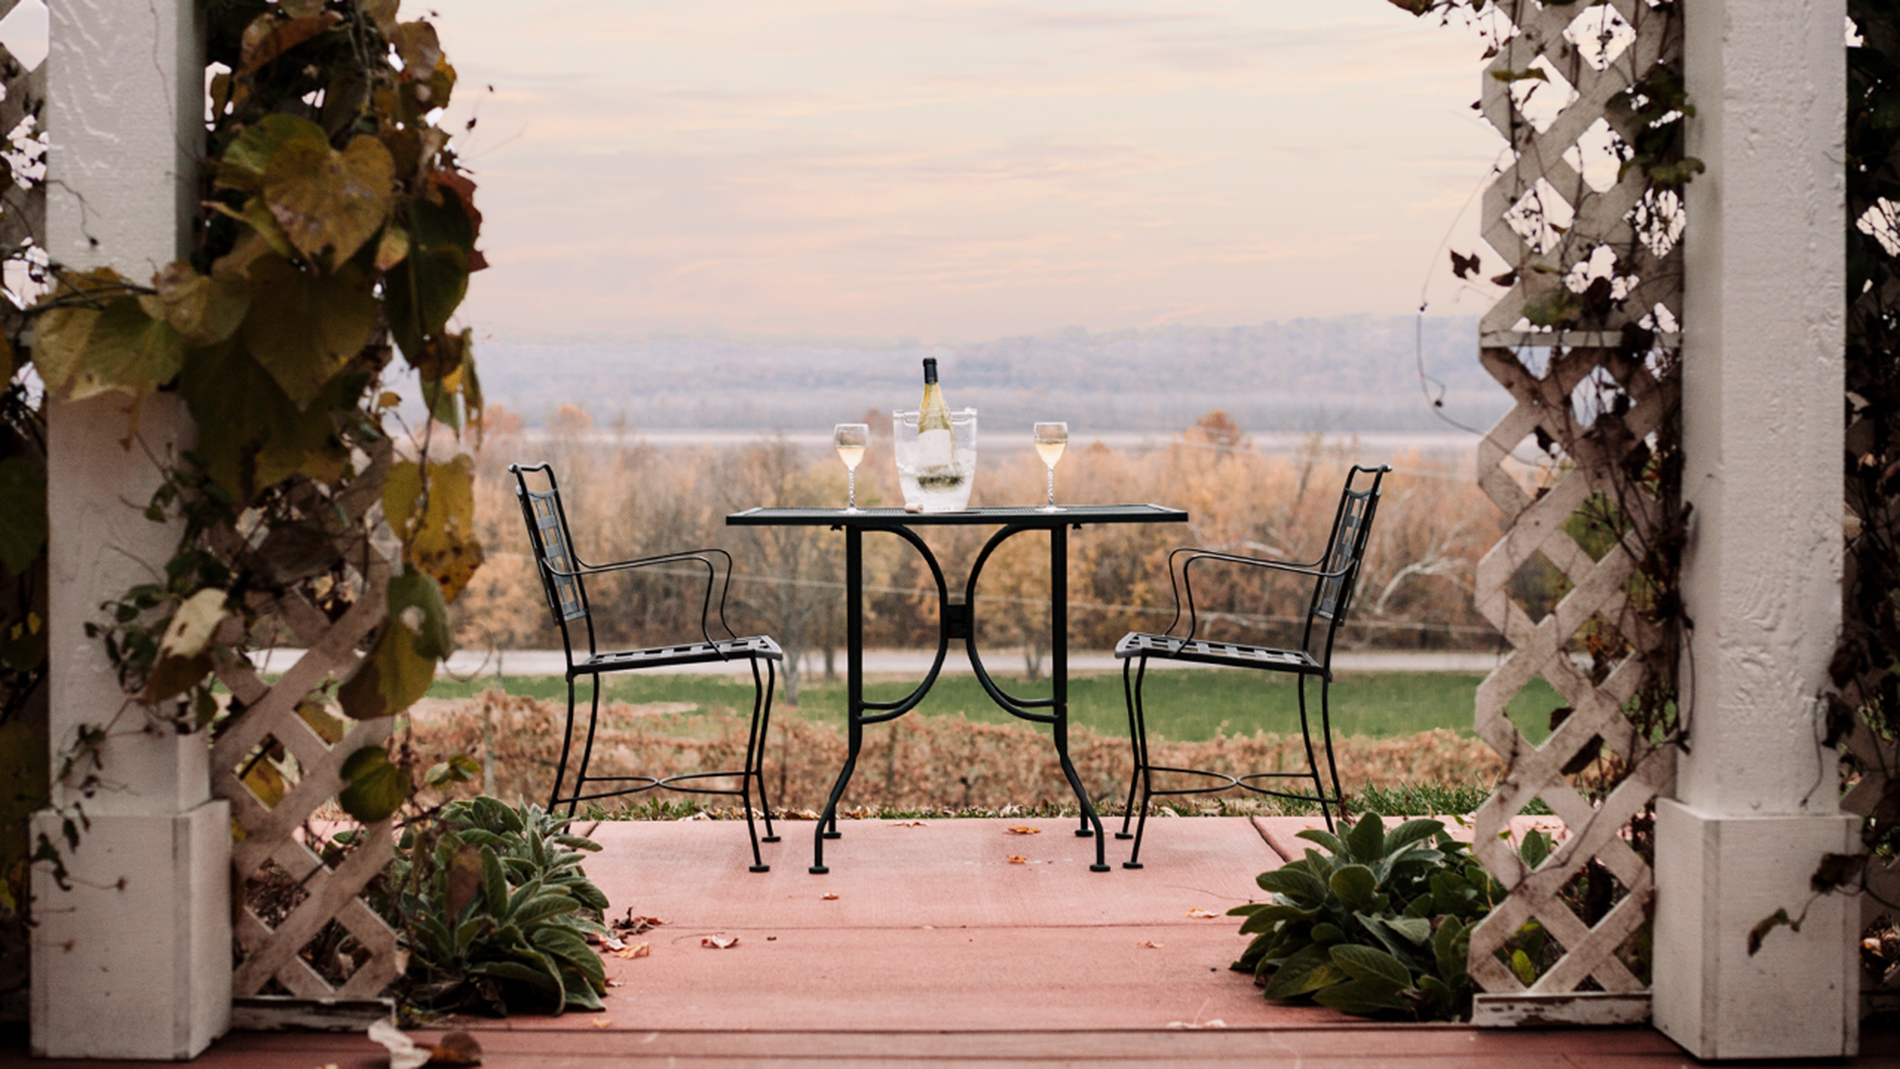 Defiance Ridge Vineyards offers a perfect escape from the city